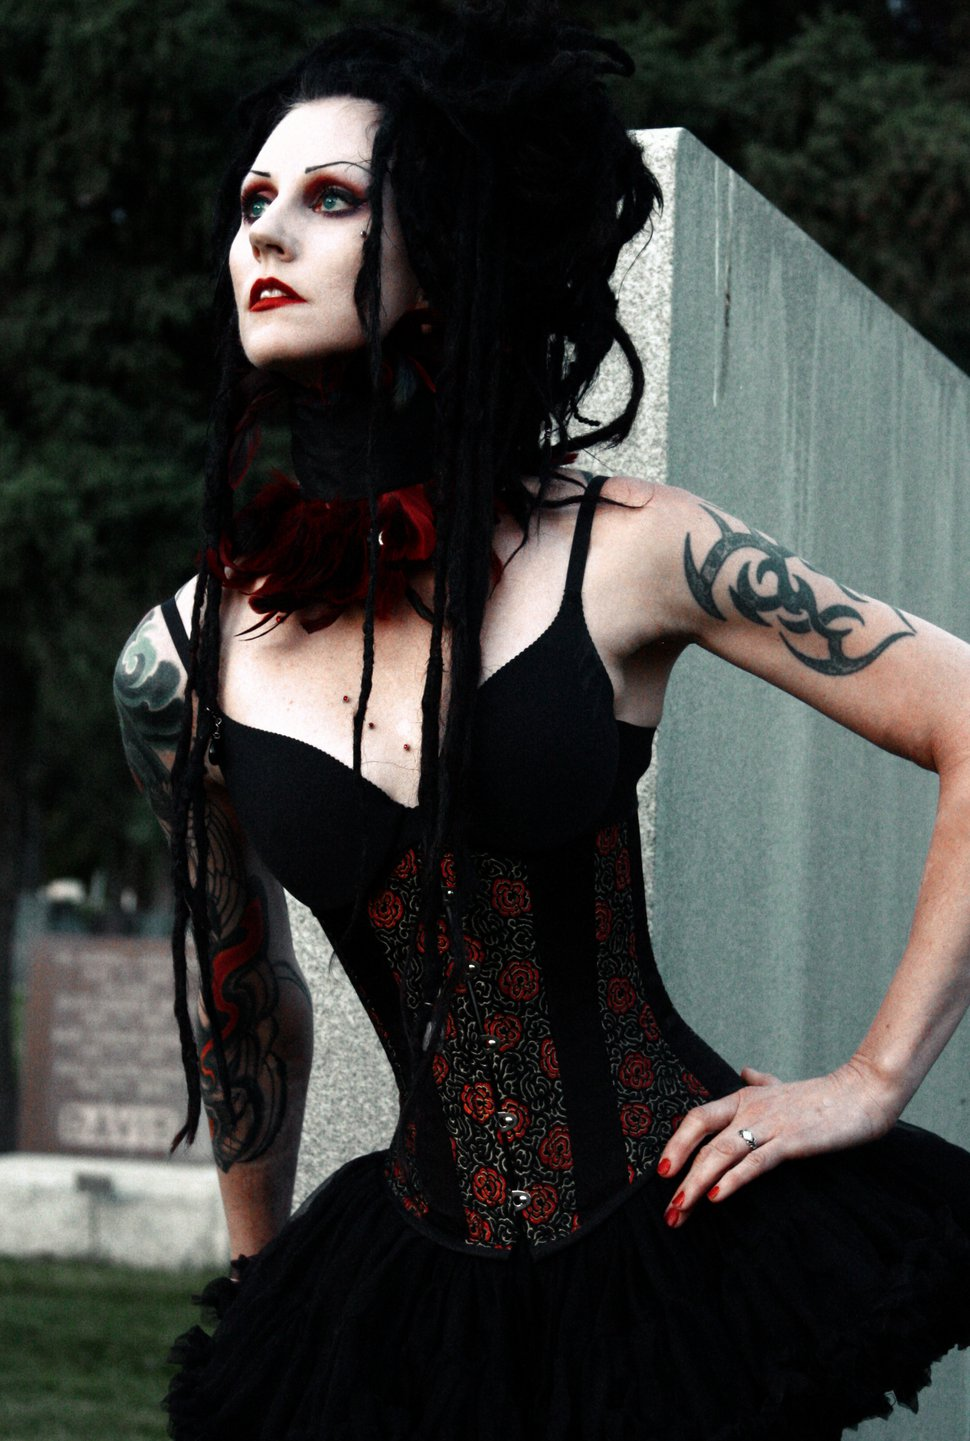 (Photo courtesy of Jeff Carlisle) Cinamon Hadley, an influential figure in Salt Lake City's goth scene and the visual inspiration for the character Death of the Endless, from DC Comics'